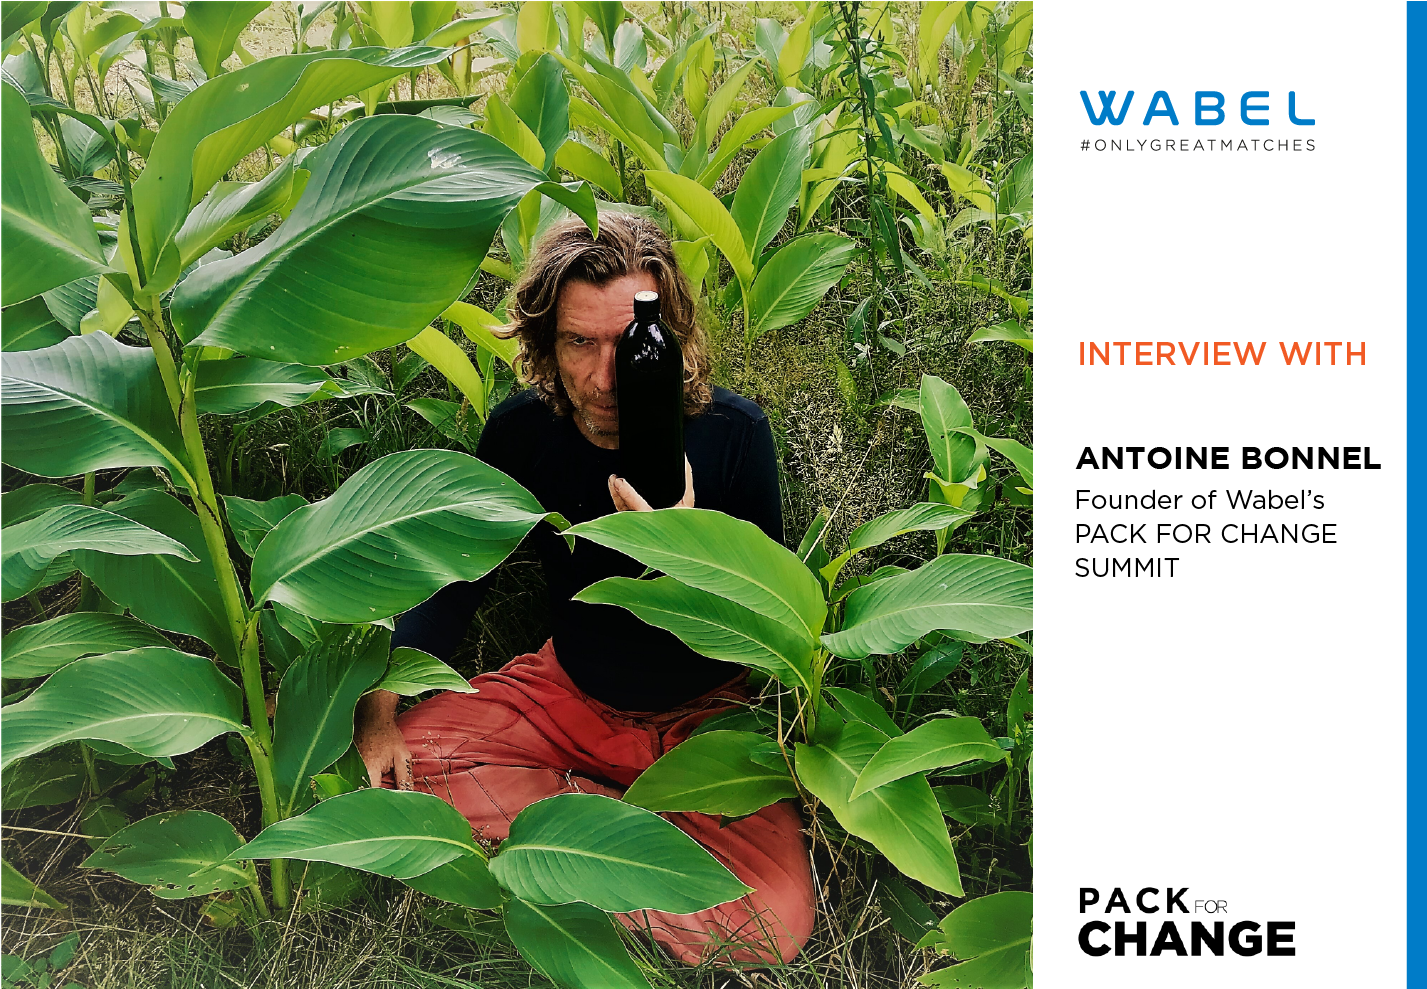 Shocked Into Action: Interview With Wabel Pack for Change Founder Antoine Bonnel